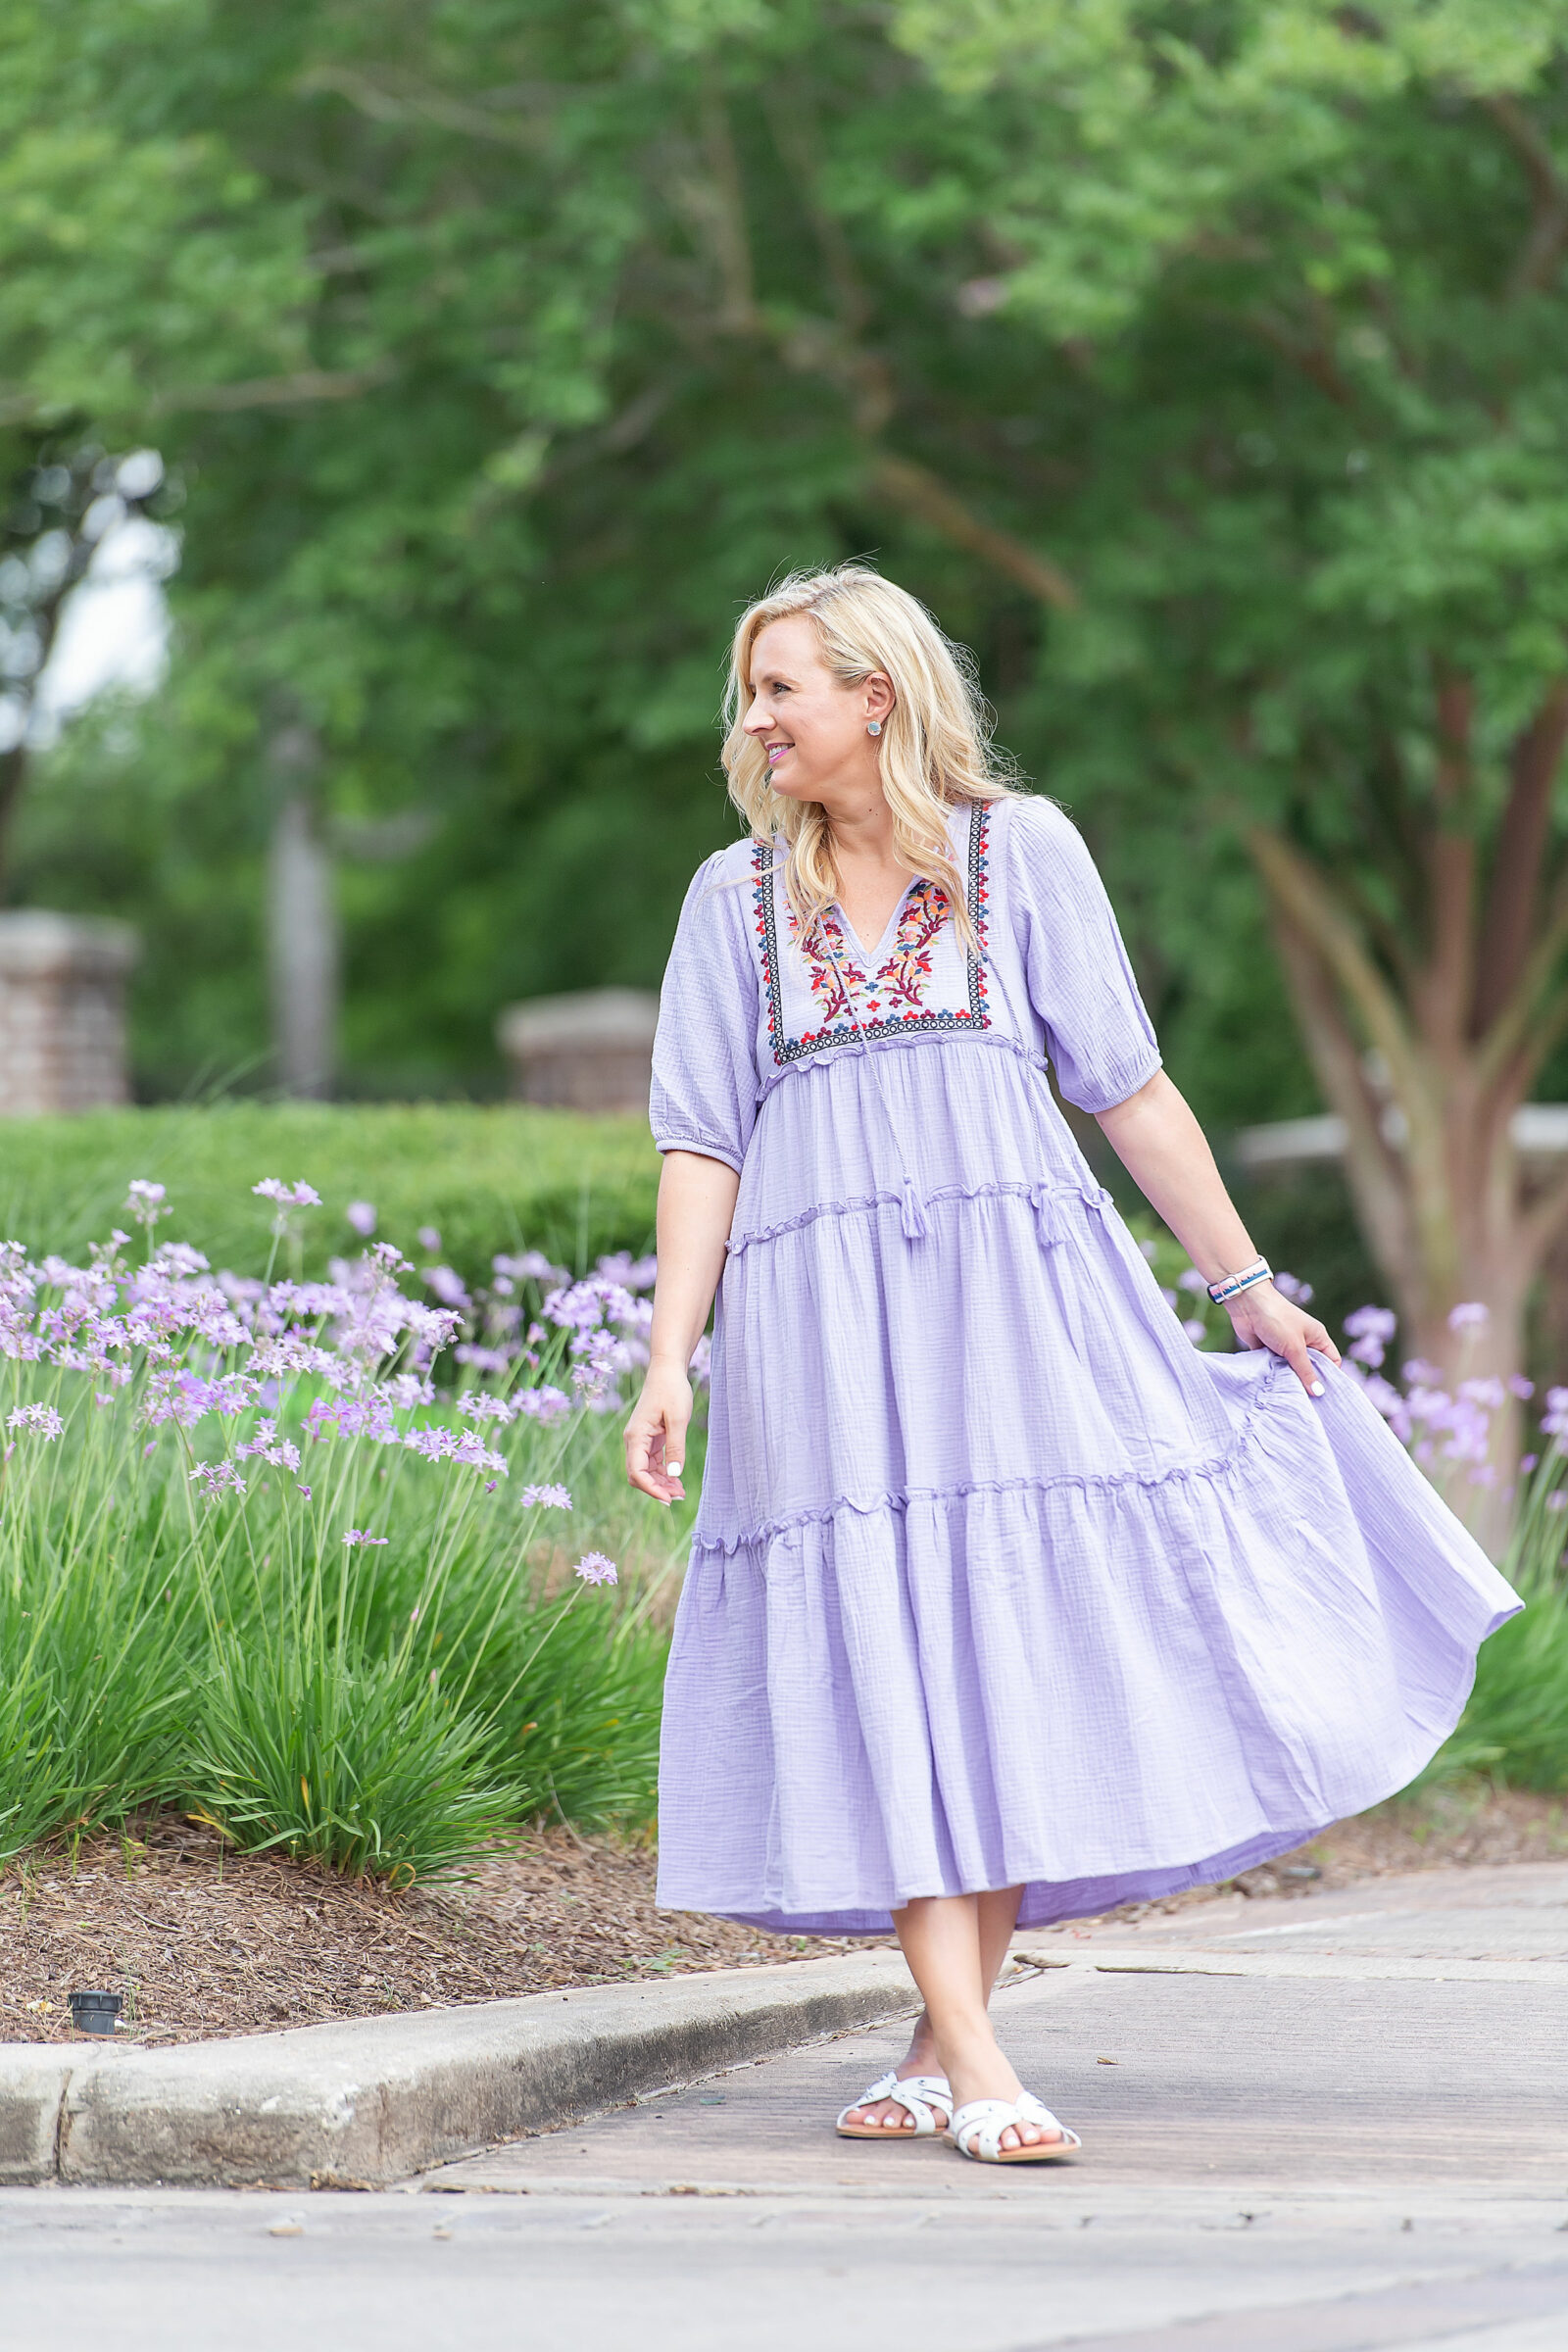 Prettiest Embroidered Dresses for Summer   Embroidered Dresses by popular Houston fashion blog, The House of Fancy: image of a woman standing by some purple flowers and wearing a floral embroidered purple tiered maxi dress.